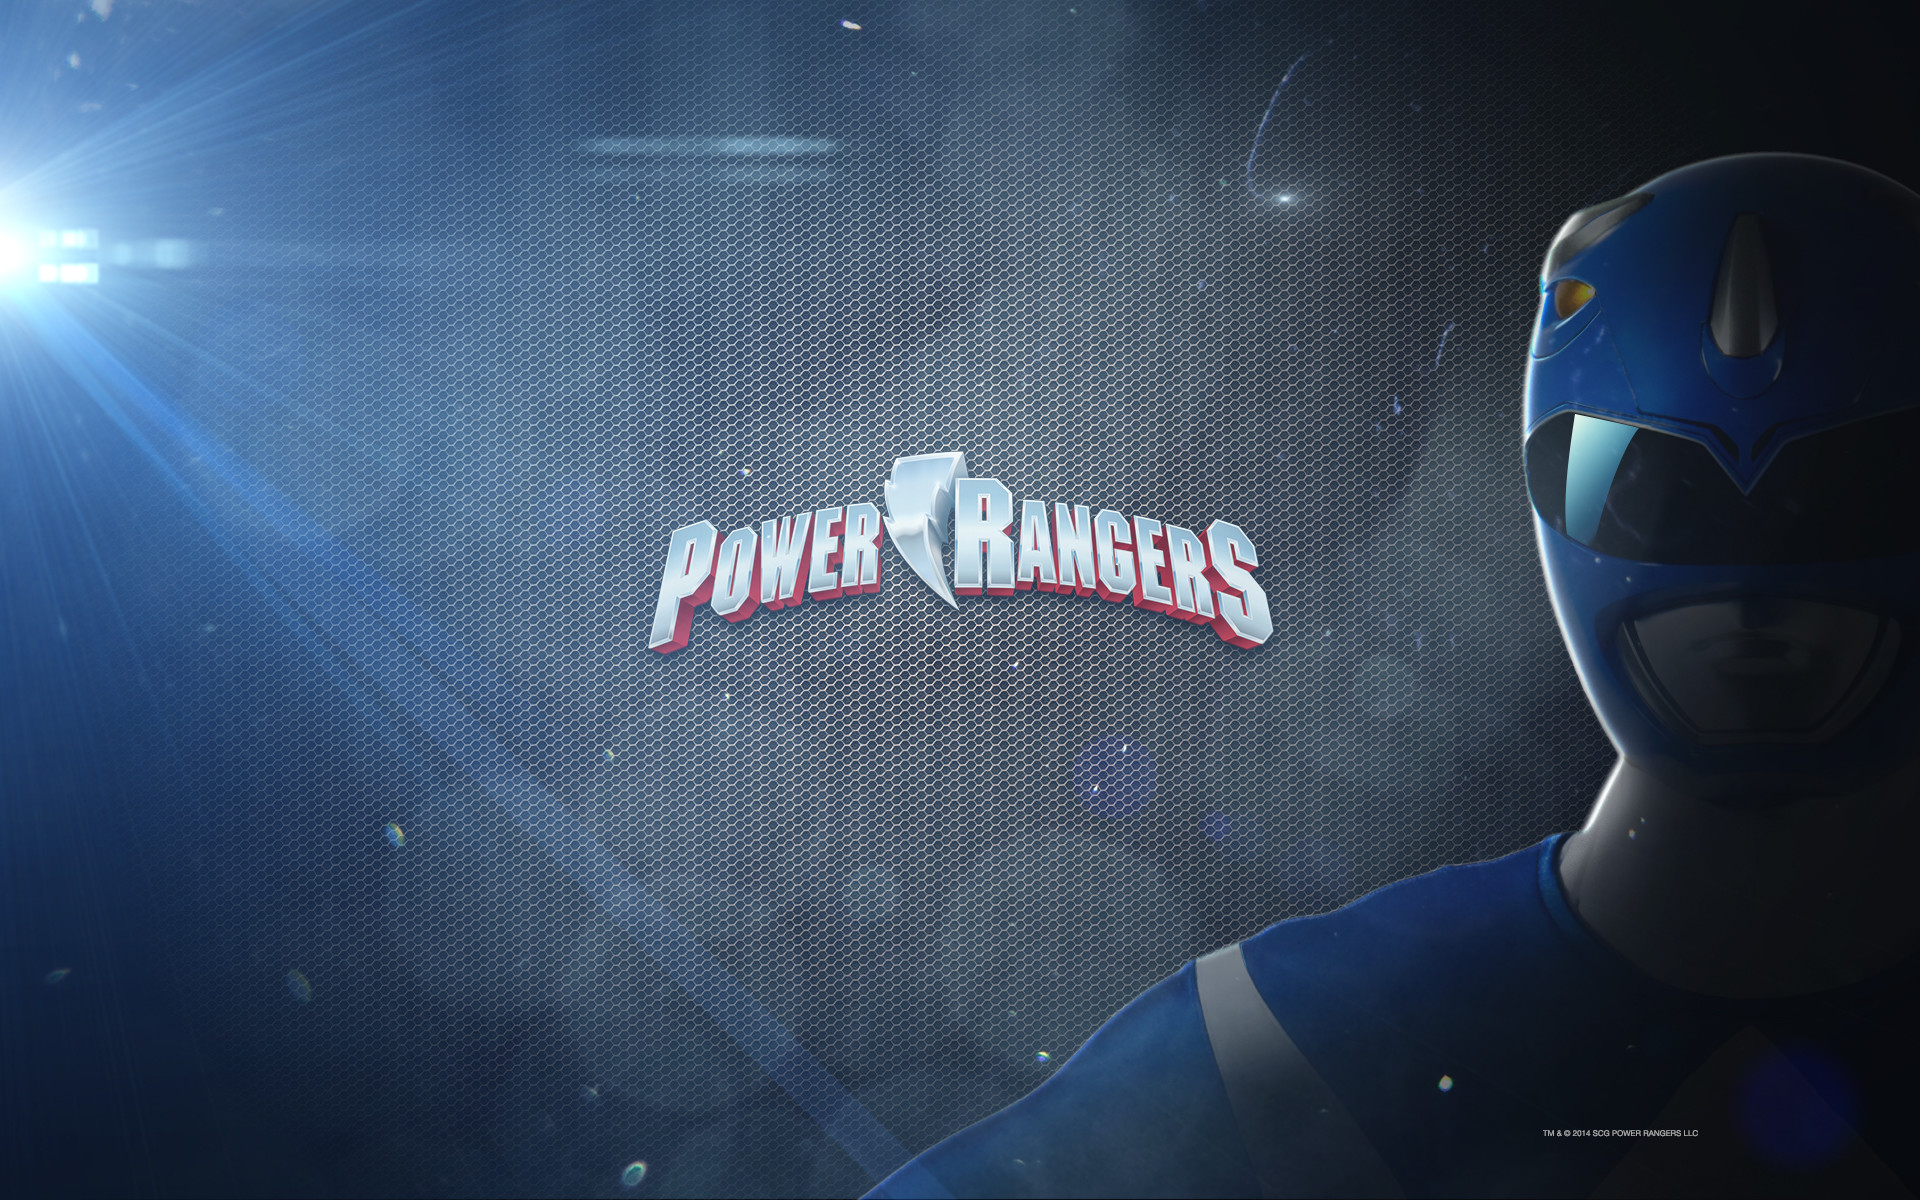 1920x1200 Power Rangers Wallpaper: Mighty Megaforce Blue |Fun Desktop .